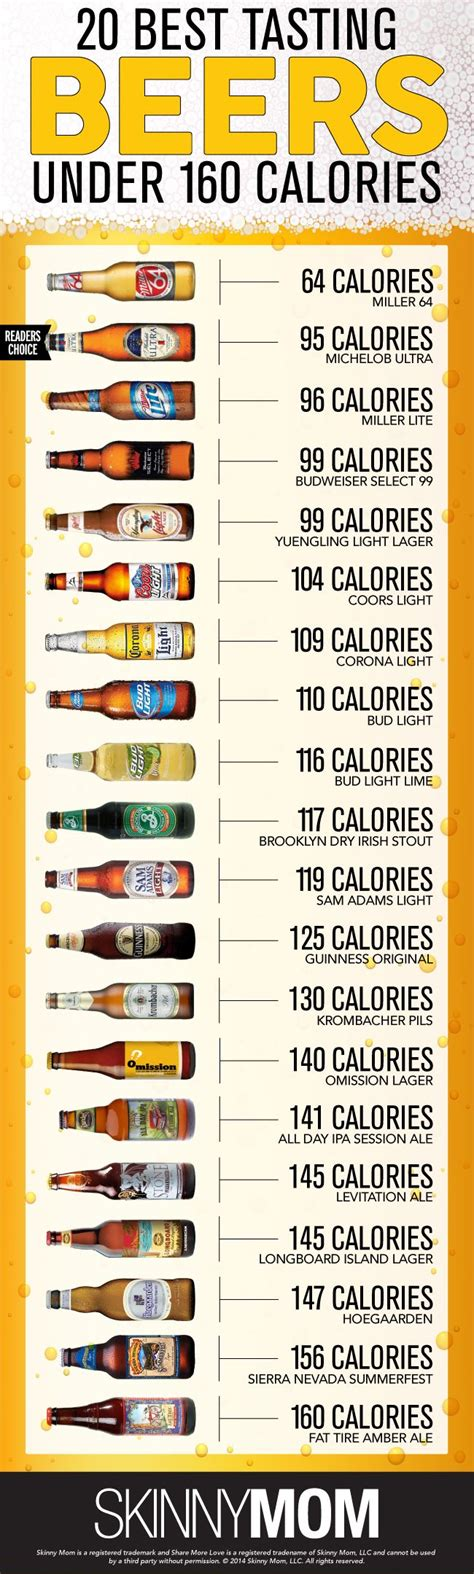 weight loss liquor picture 9